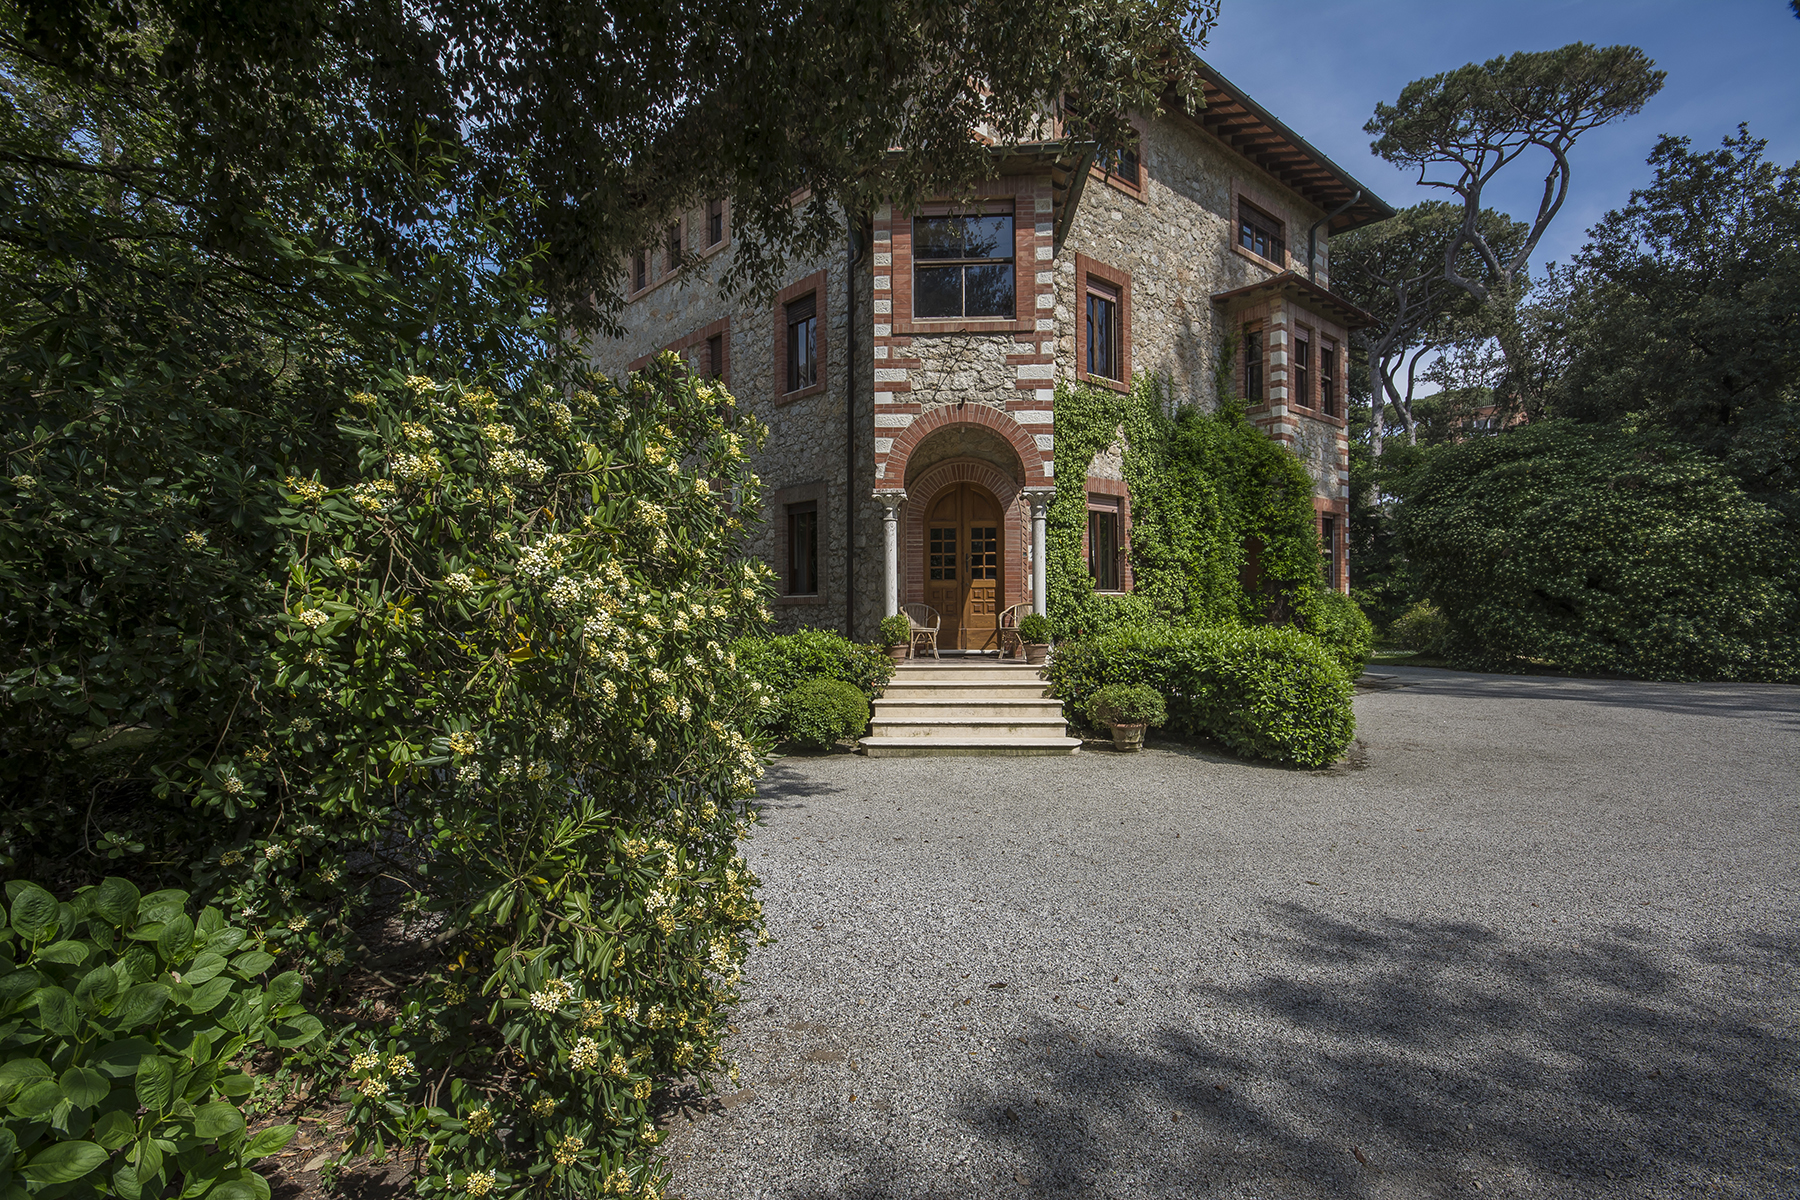 Additional photo for property listing at Lovely villa a few steps away from the beach Forte Dei Marmi, Lucca Italy